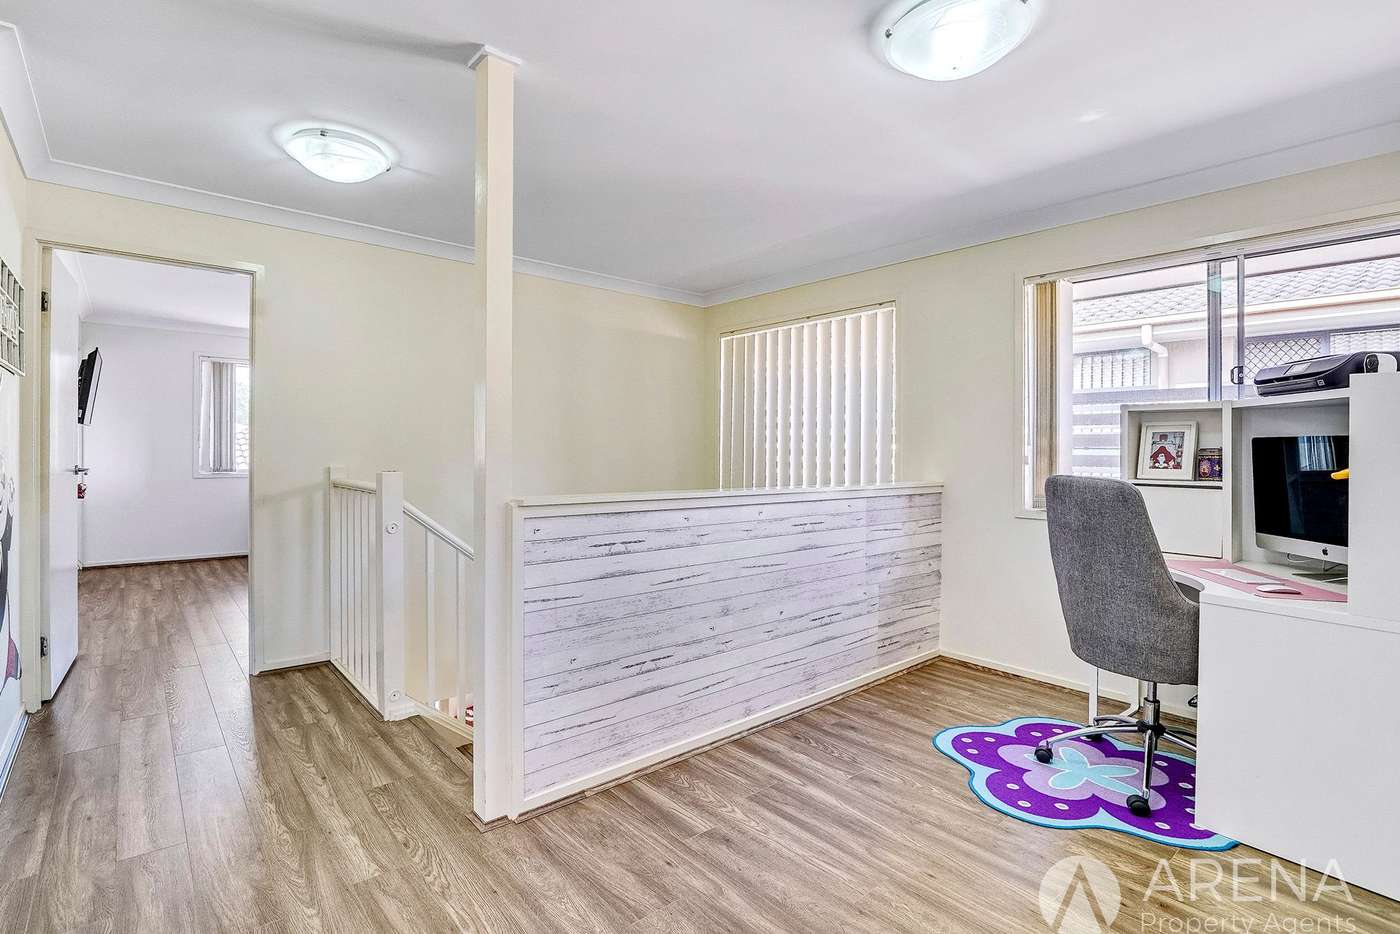 Fifth view of Homely townhouse listing, 13/20 Rosella Close, Calamvale QLD 4116